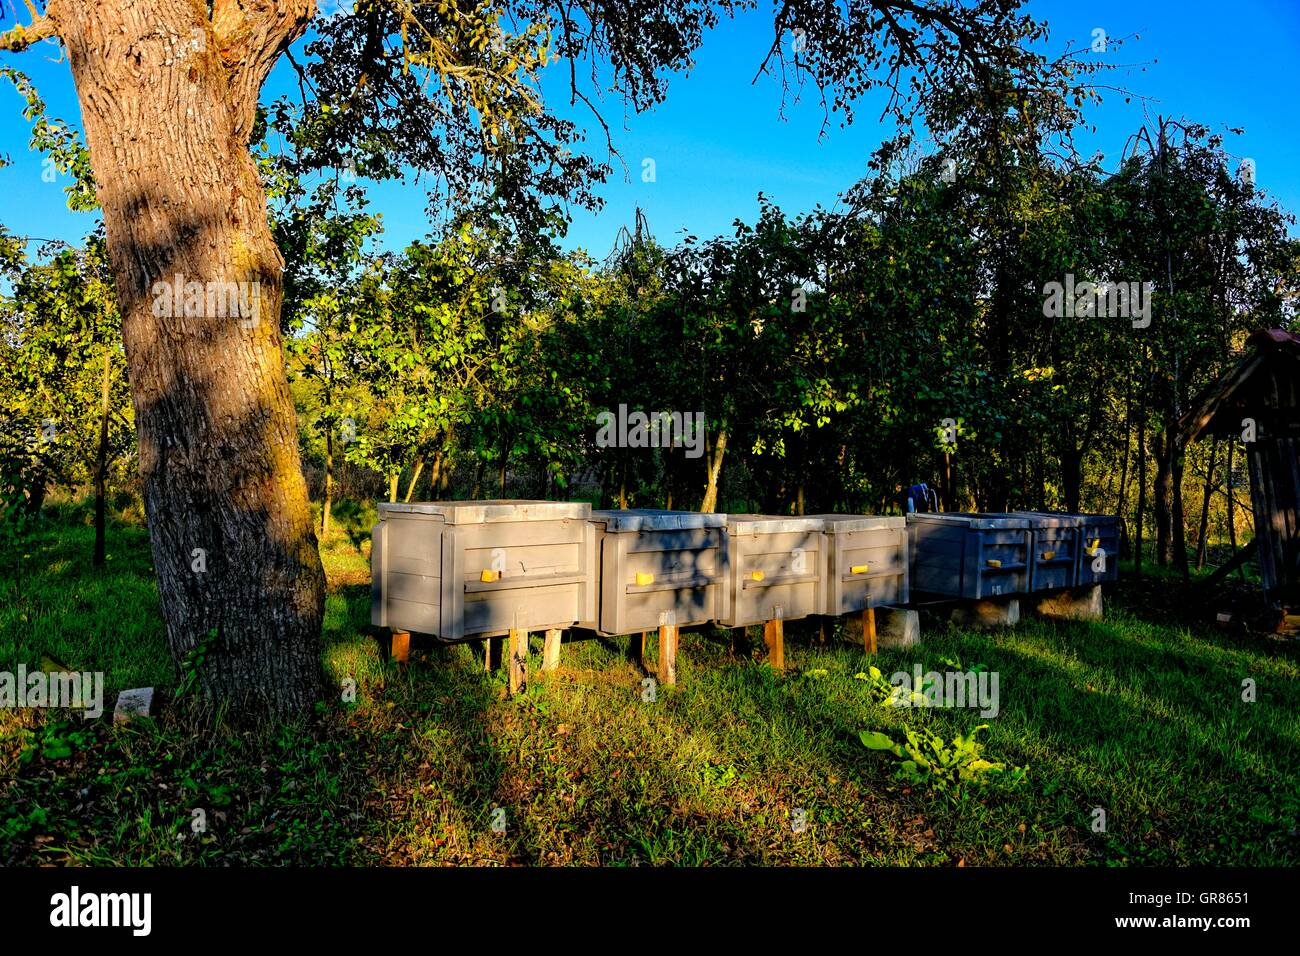 Mobile Apiary - Stock Image